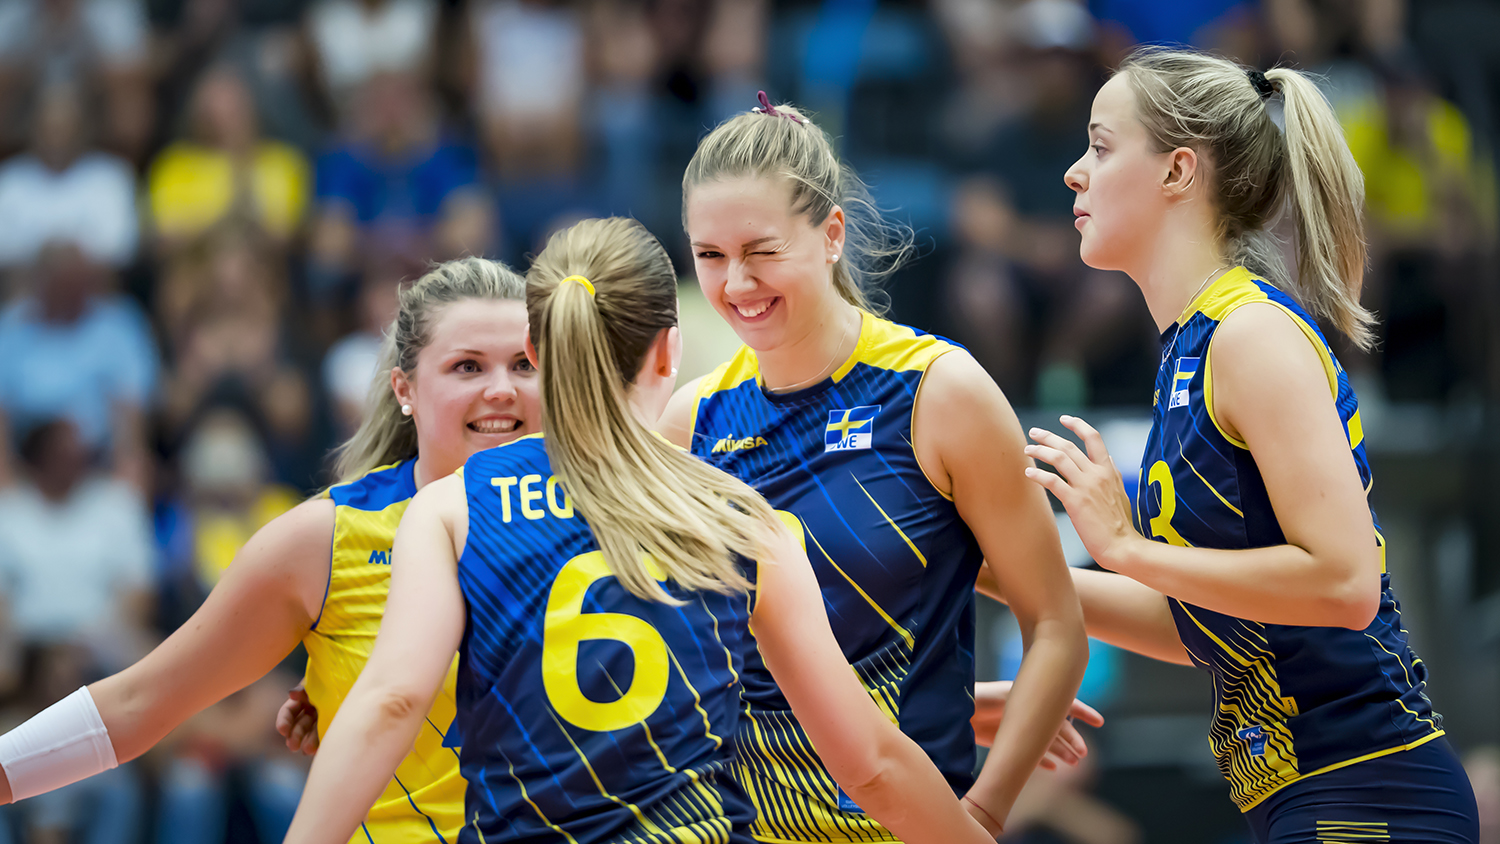 Volleybollandslaget os kvalar